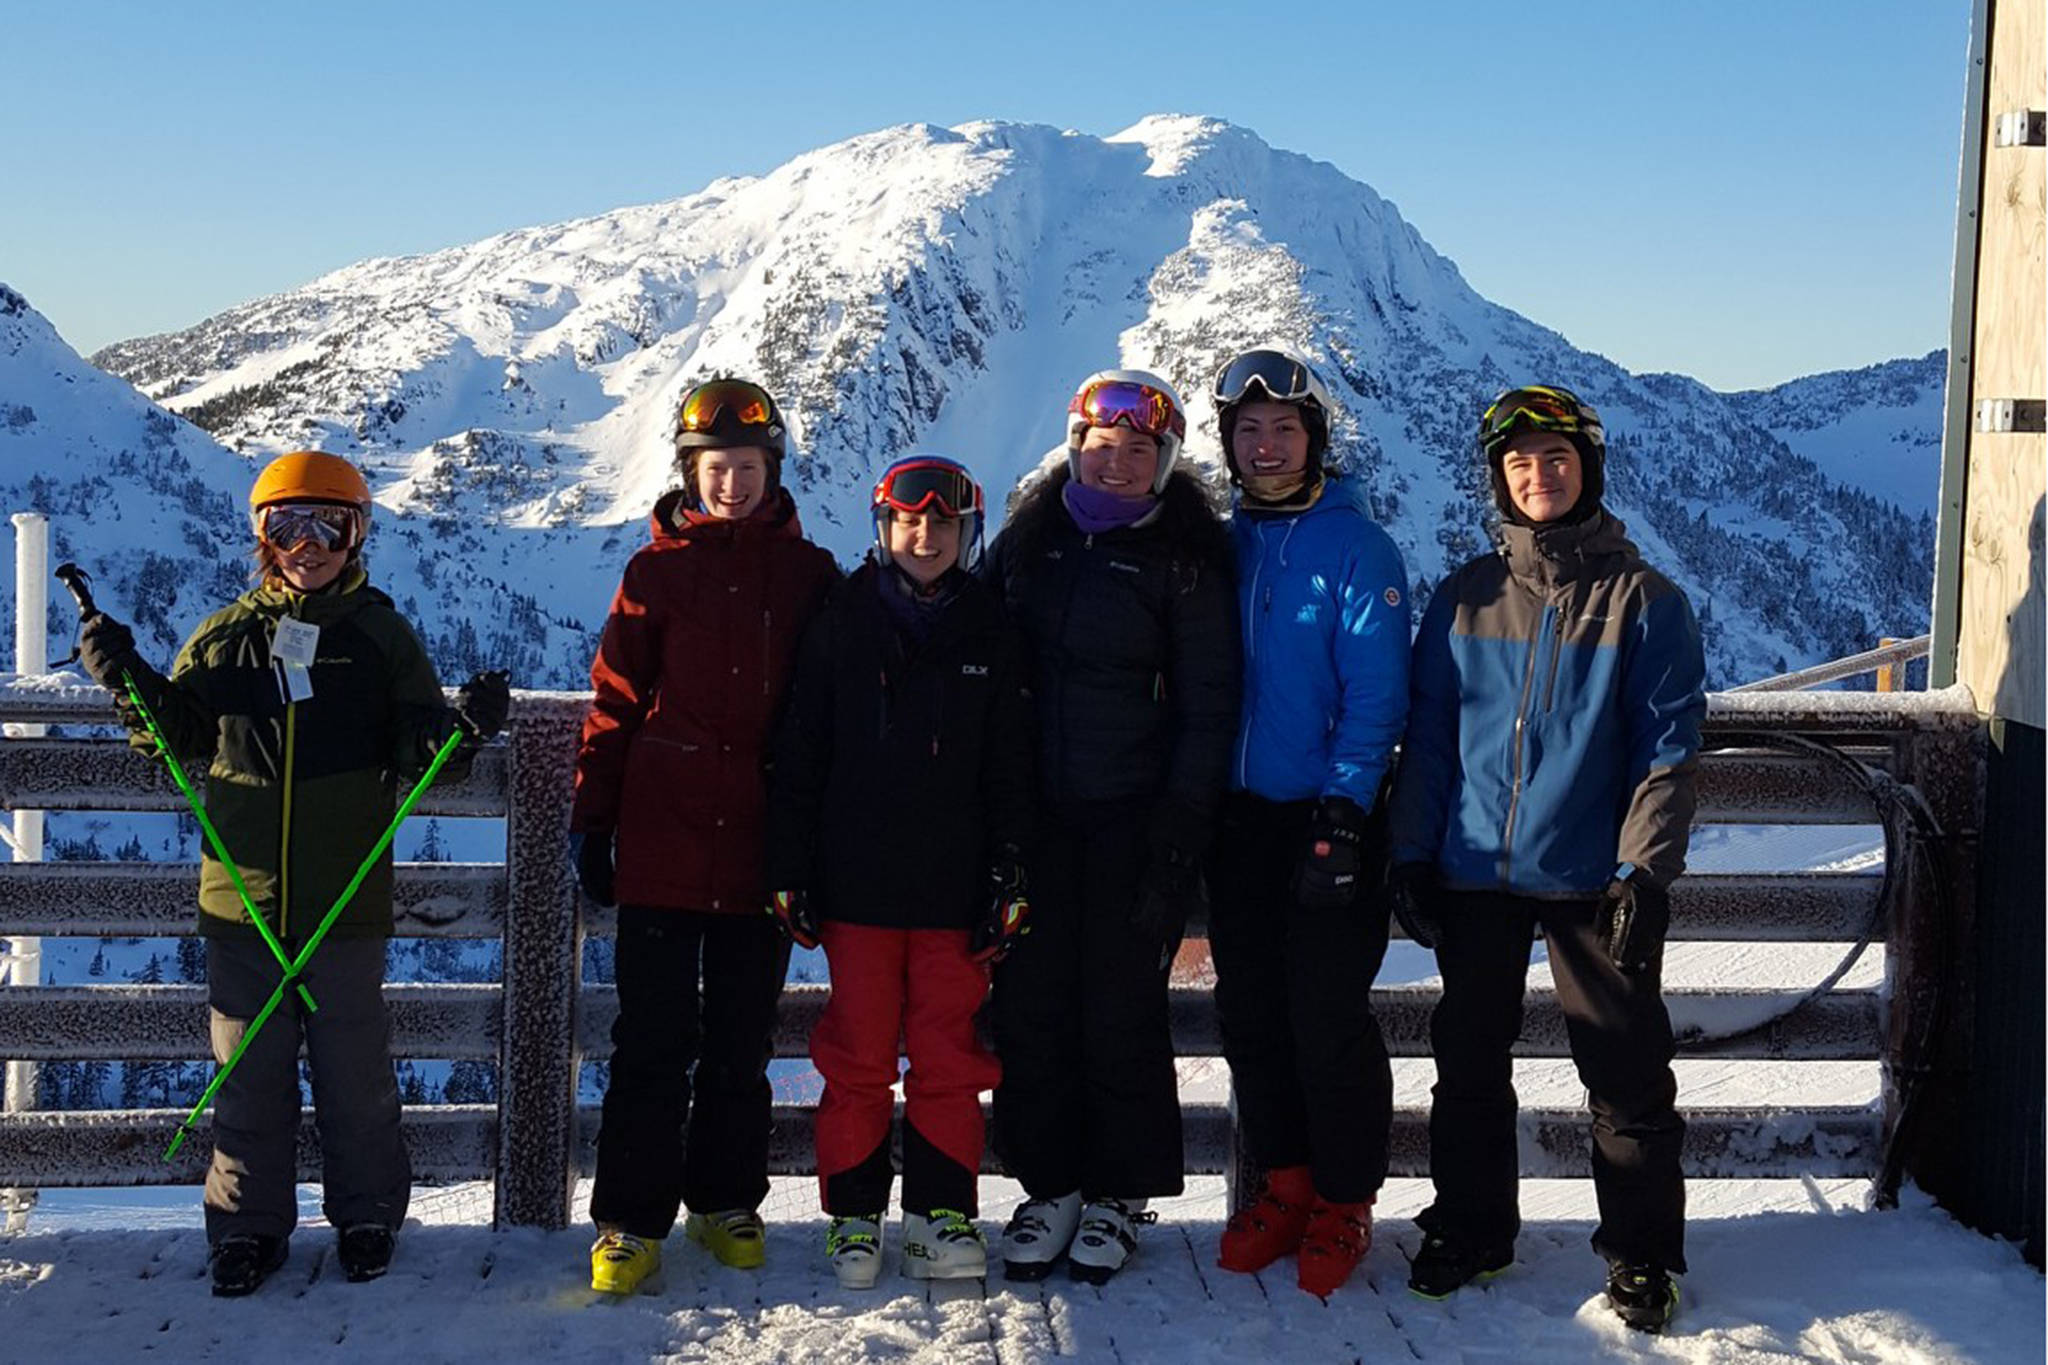 The Juneau Ski Club's FreeRide Team on the top of Eaglecrest on Saturday. Left to right: Eero Wooldord, McKenna McNutt, Sophia Caputo, Gabi Griggs, JoJo Griggs, Austin Smith. (Courtesy Photo | Randy Bates).